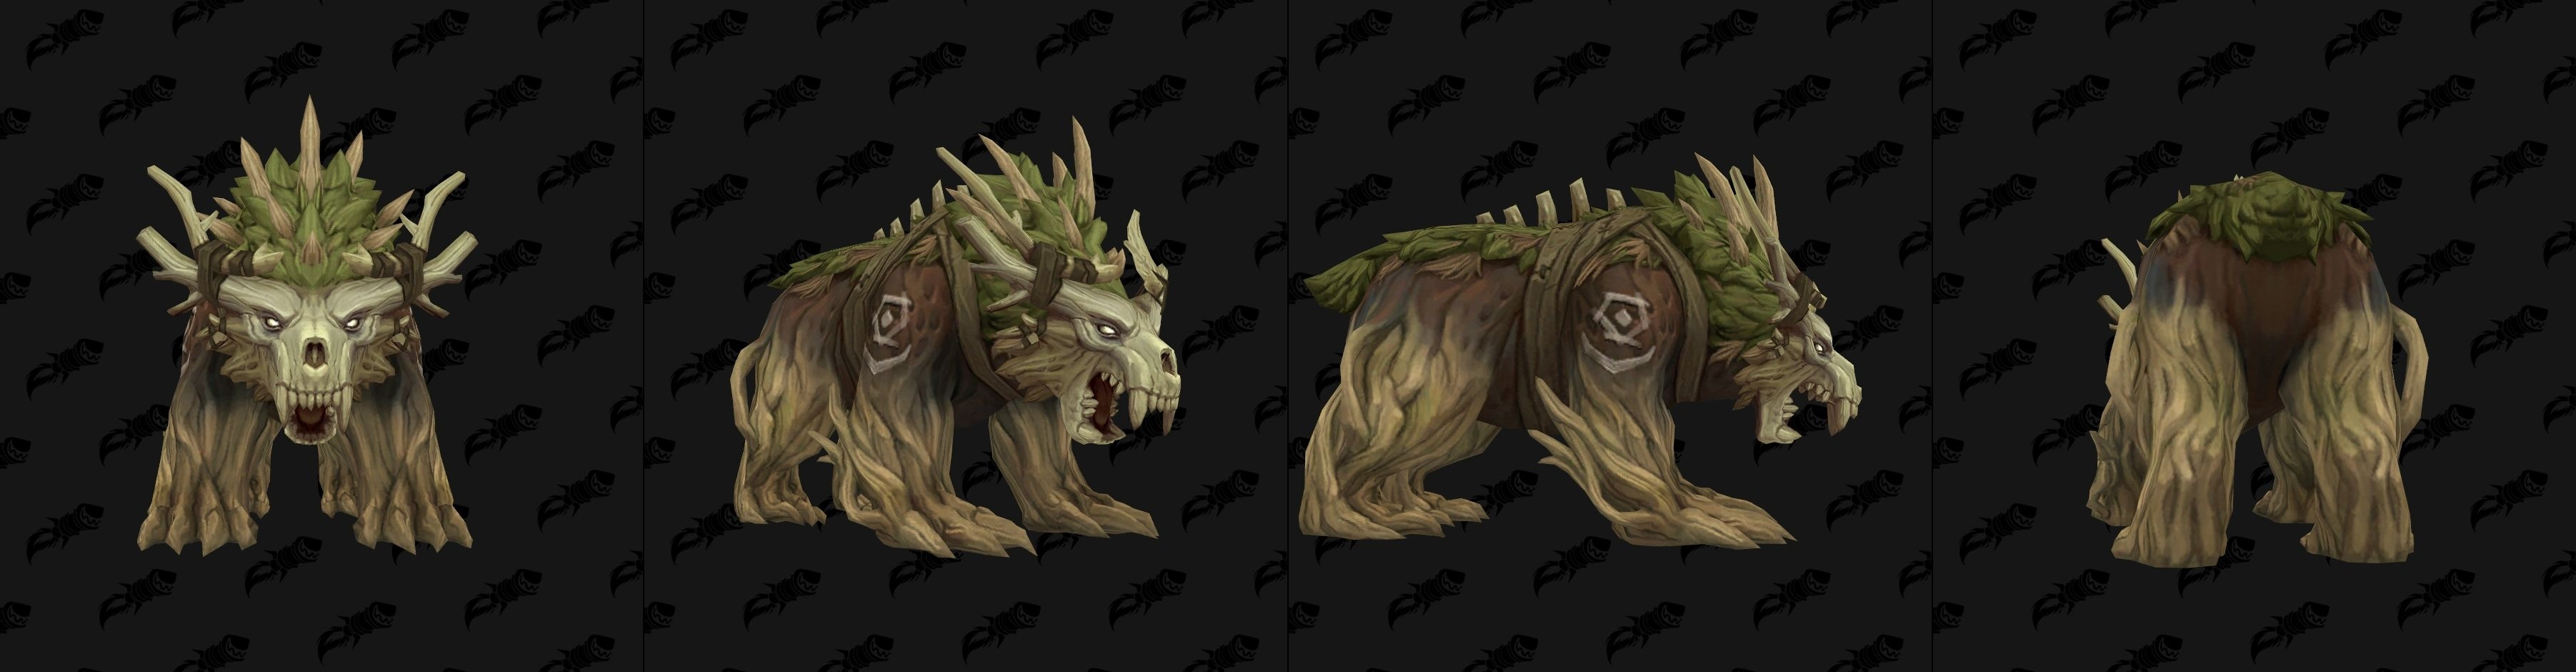 WoW Kul Tiras Bearform 1